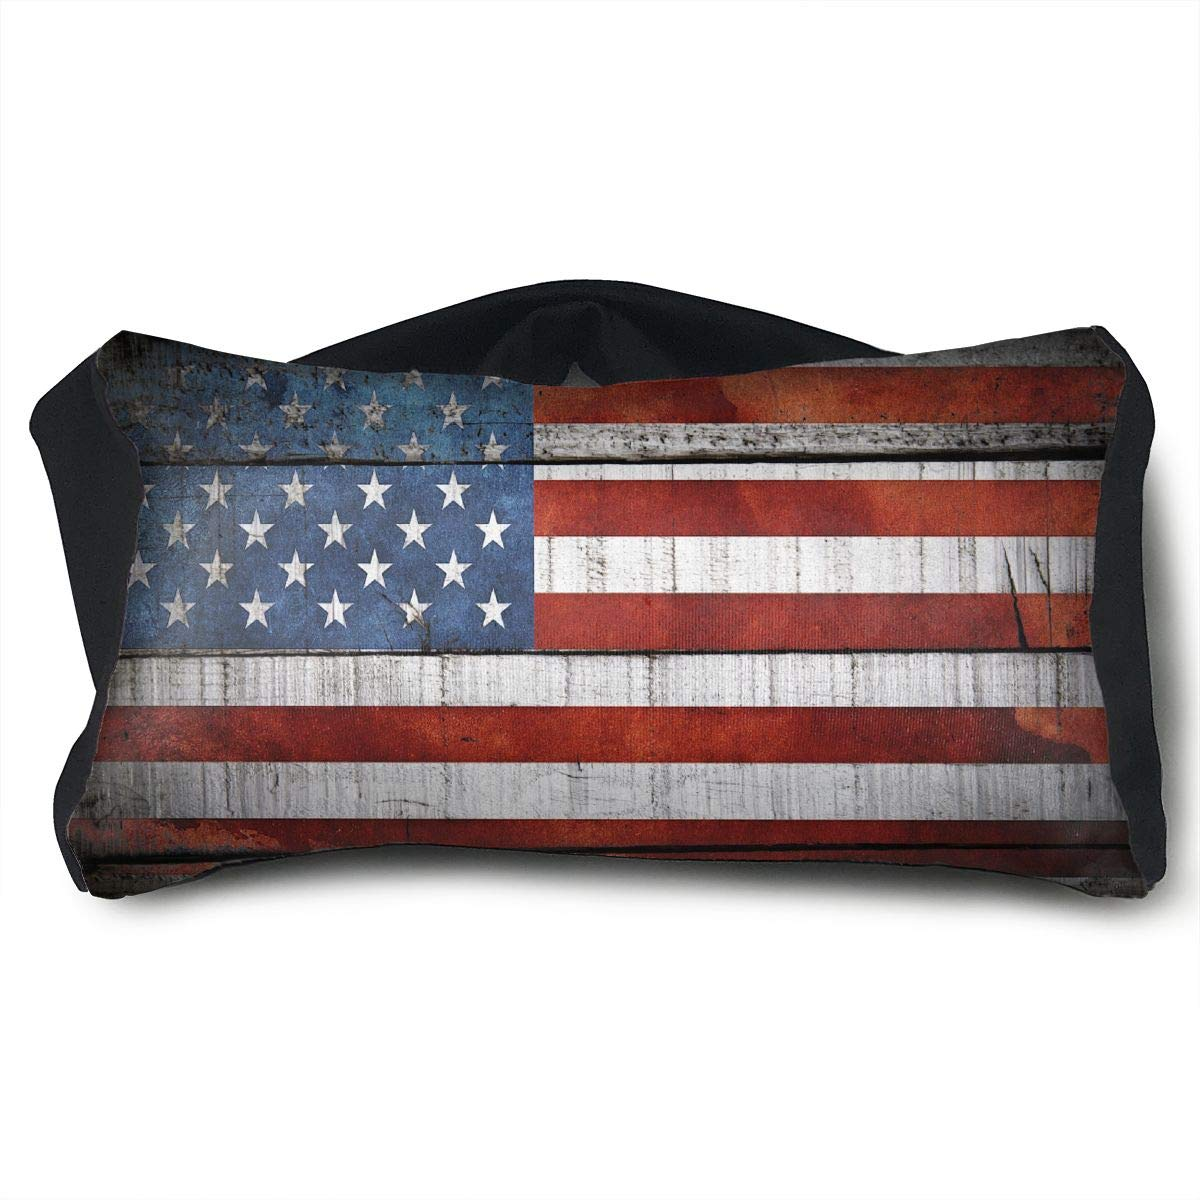 GLing-LIFE American USA Flag Wood Portable Voyage Pillow Travel Pillow and Eye Mask 2 in 1 Neck Head Support for Airplanes, Cars, Office Naps, Camping, Trains